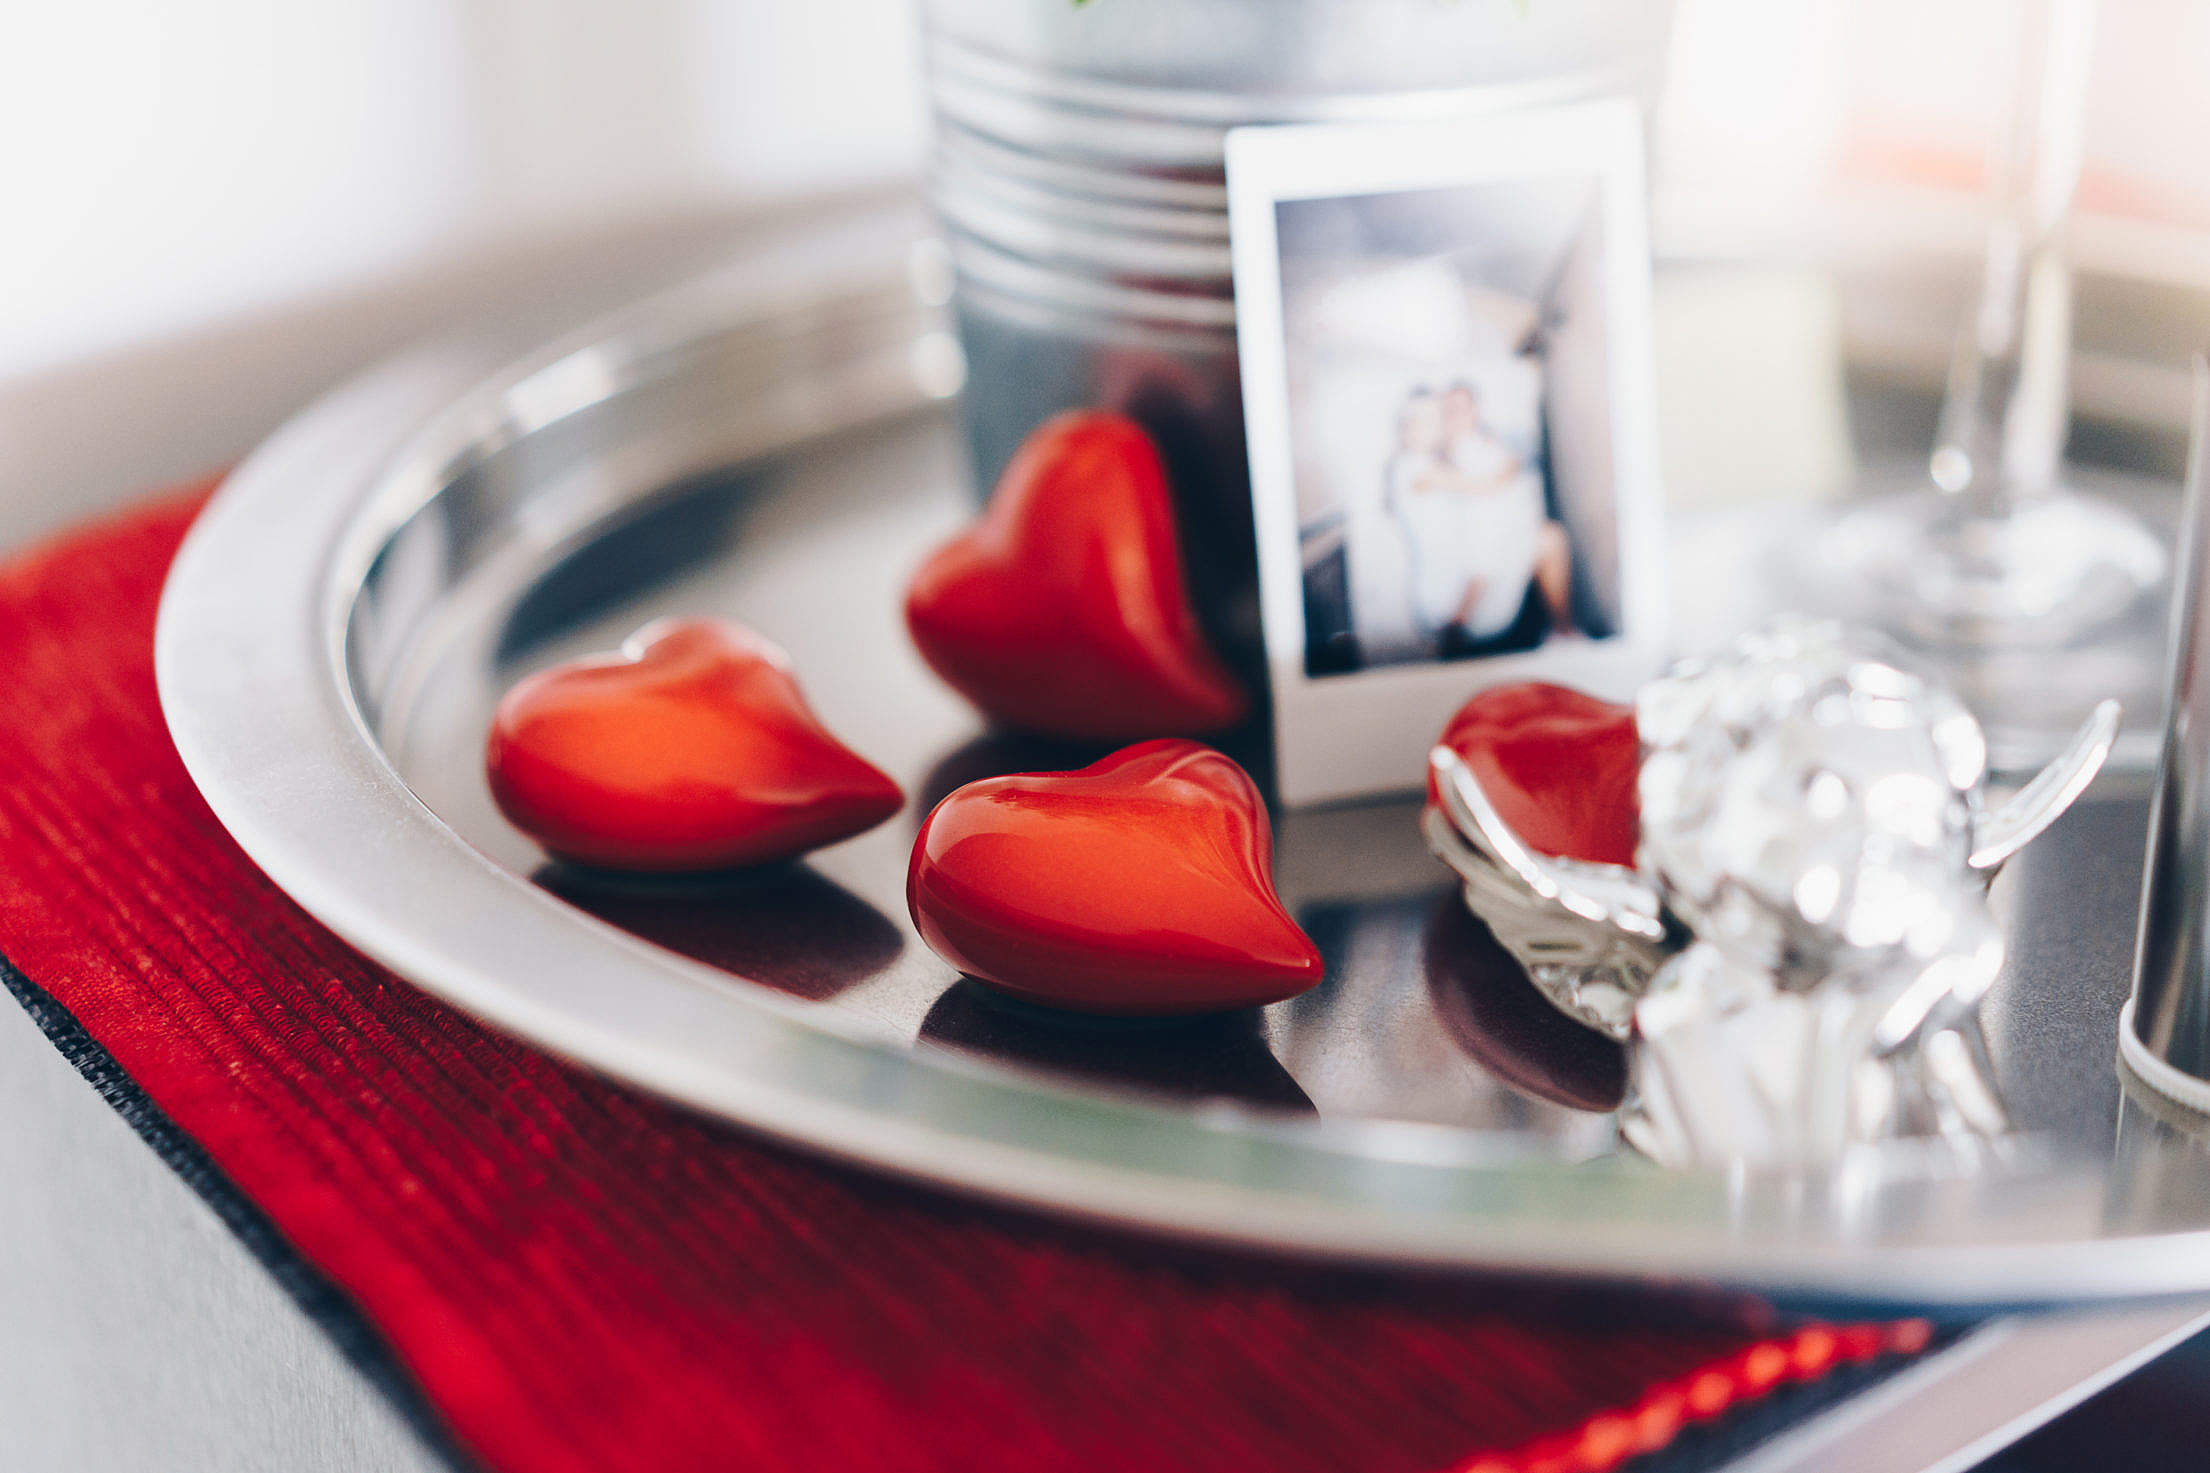 Download Romantic Love Decorations at Home Free Stock Photo